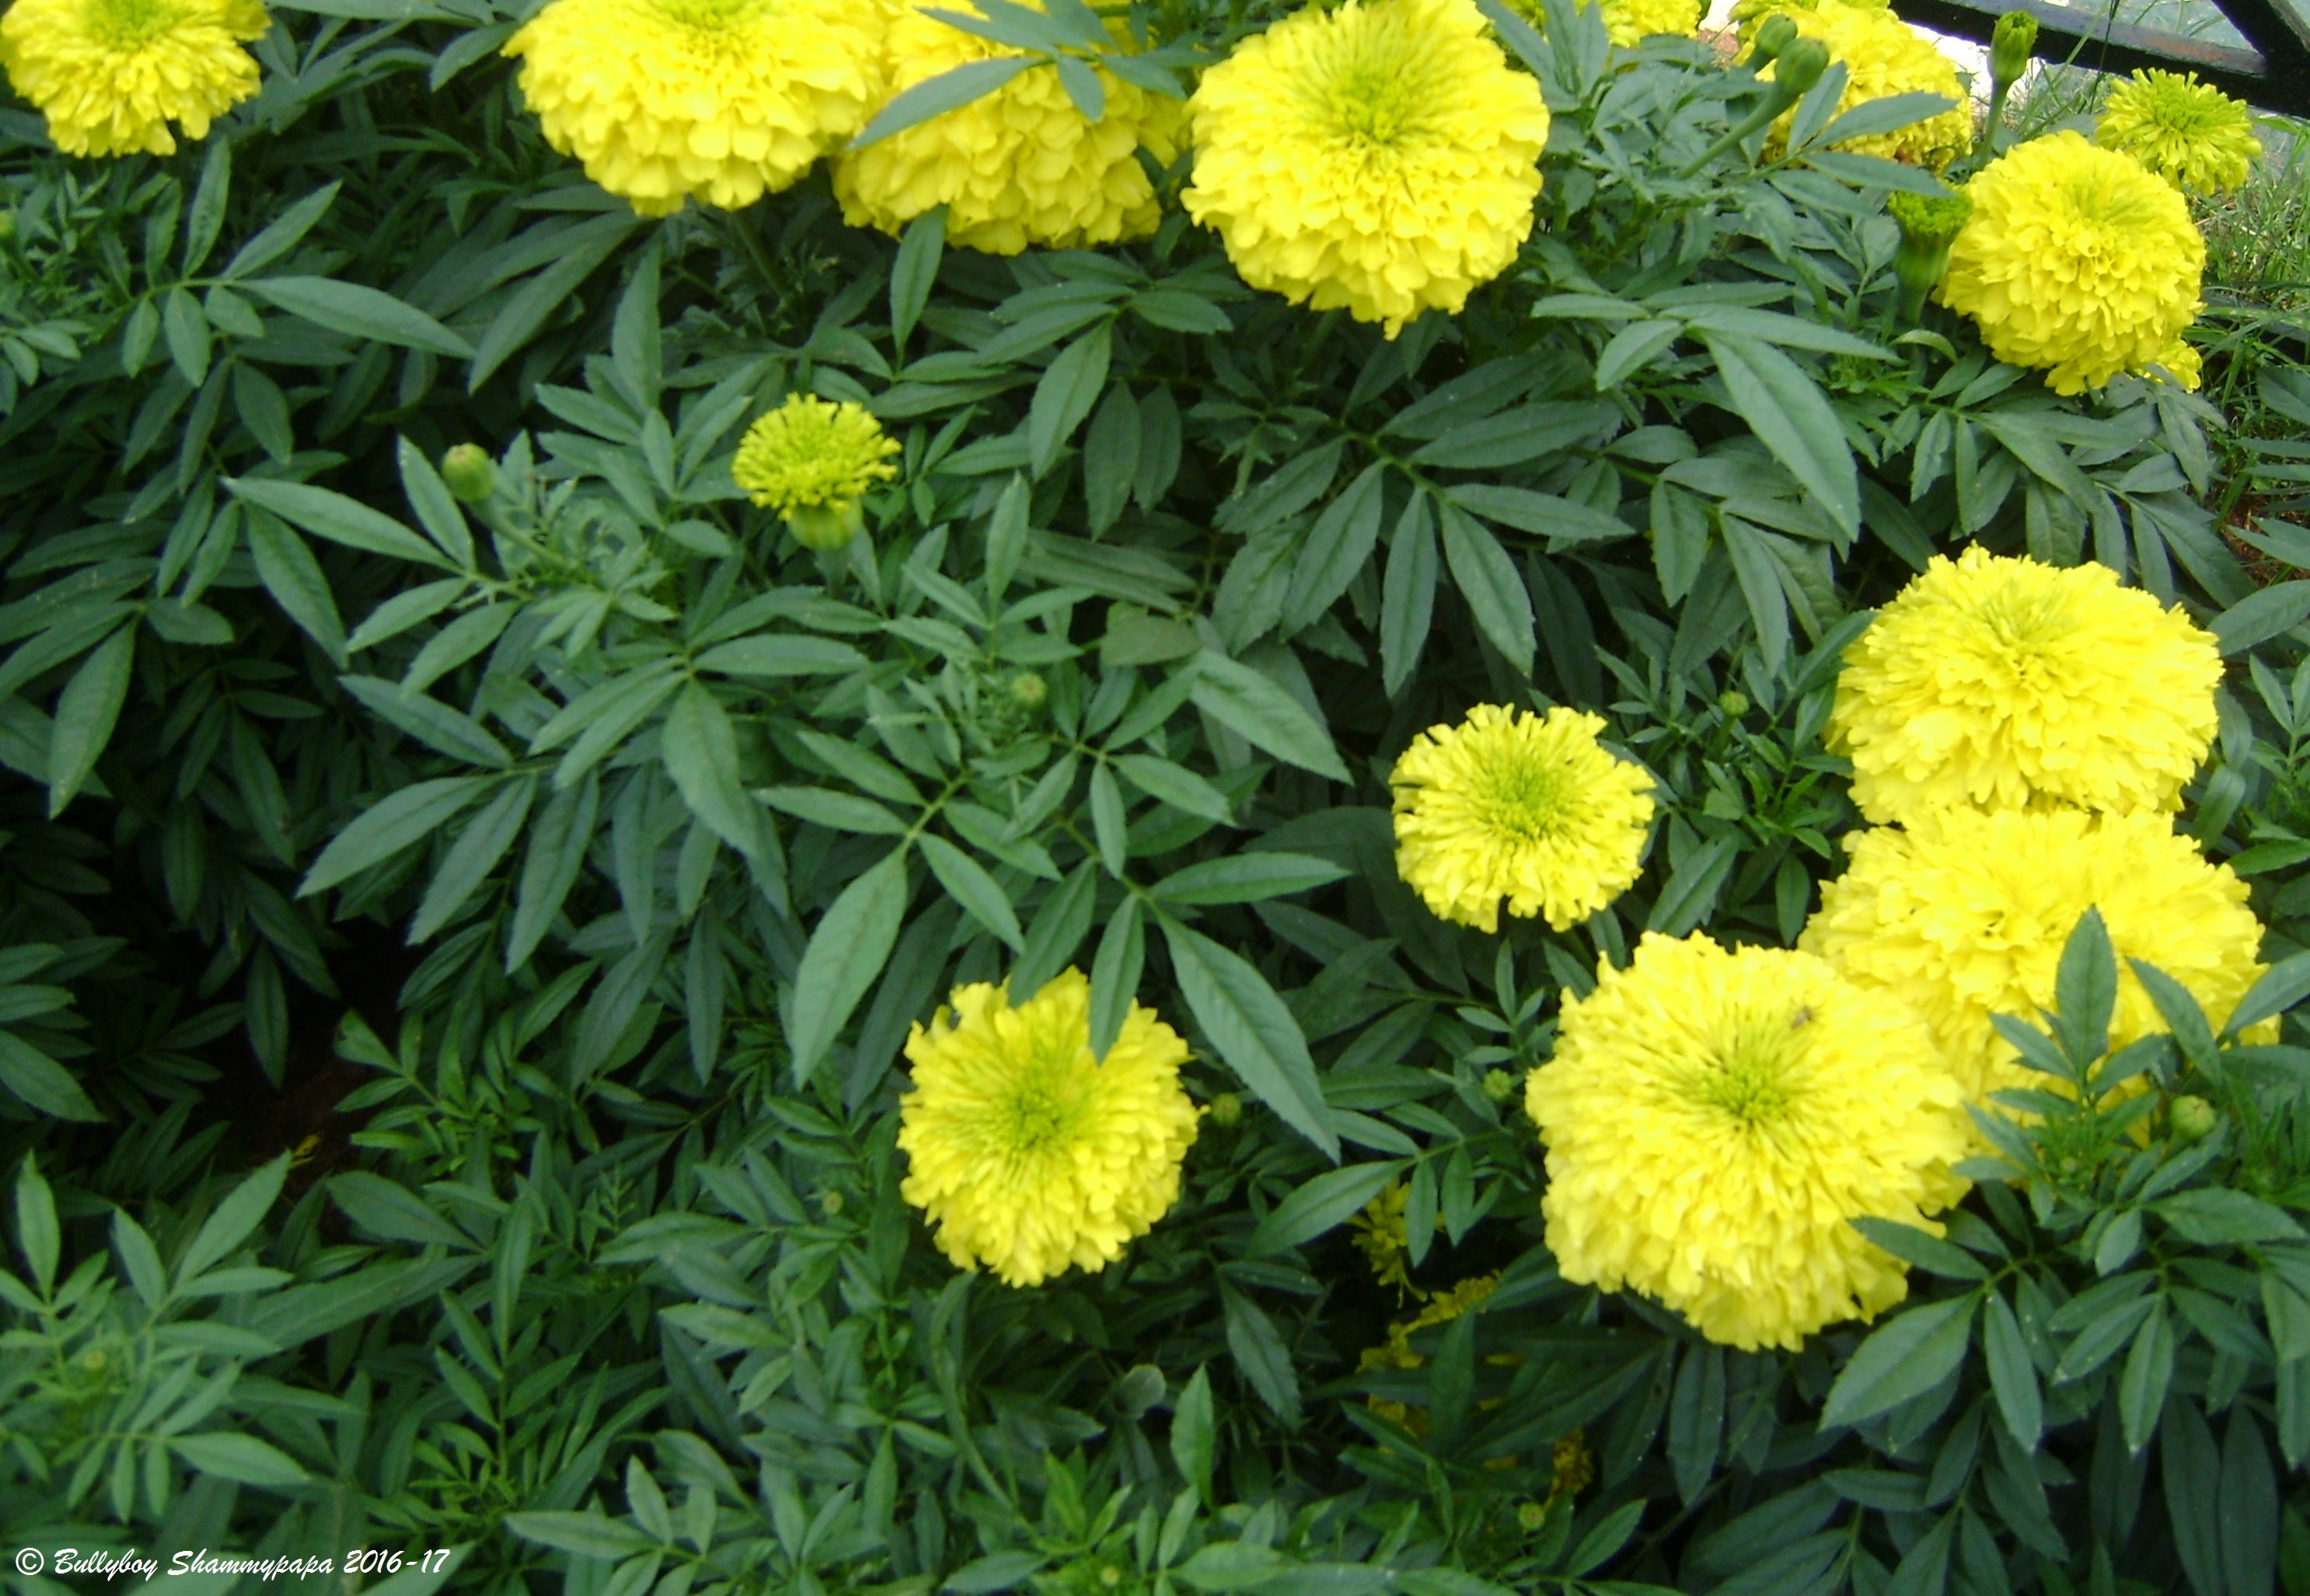 A picture of Marigold flowers